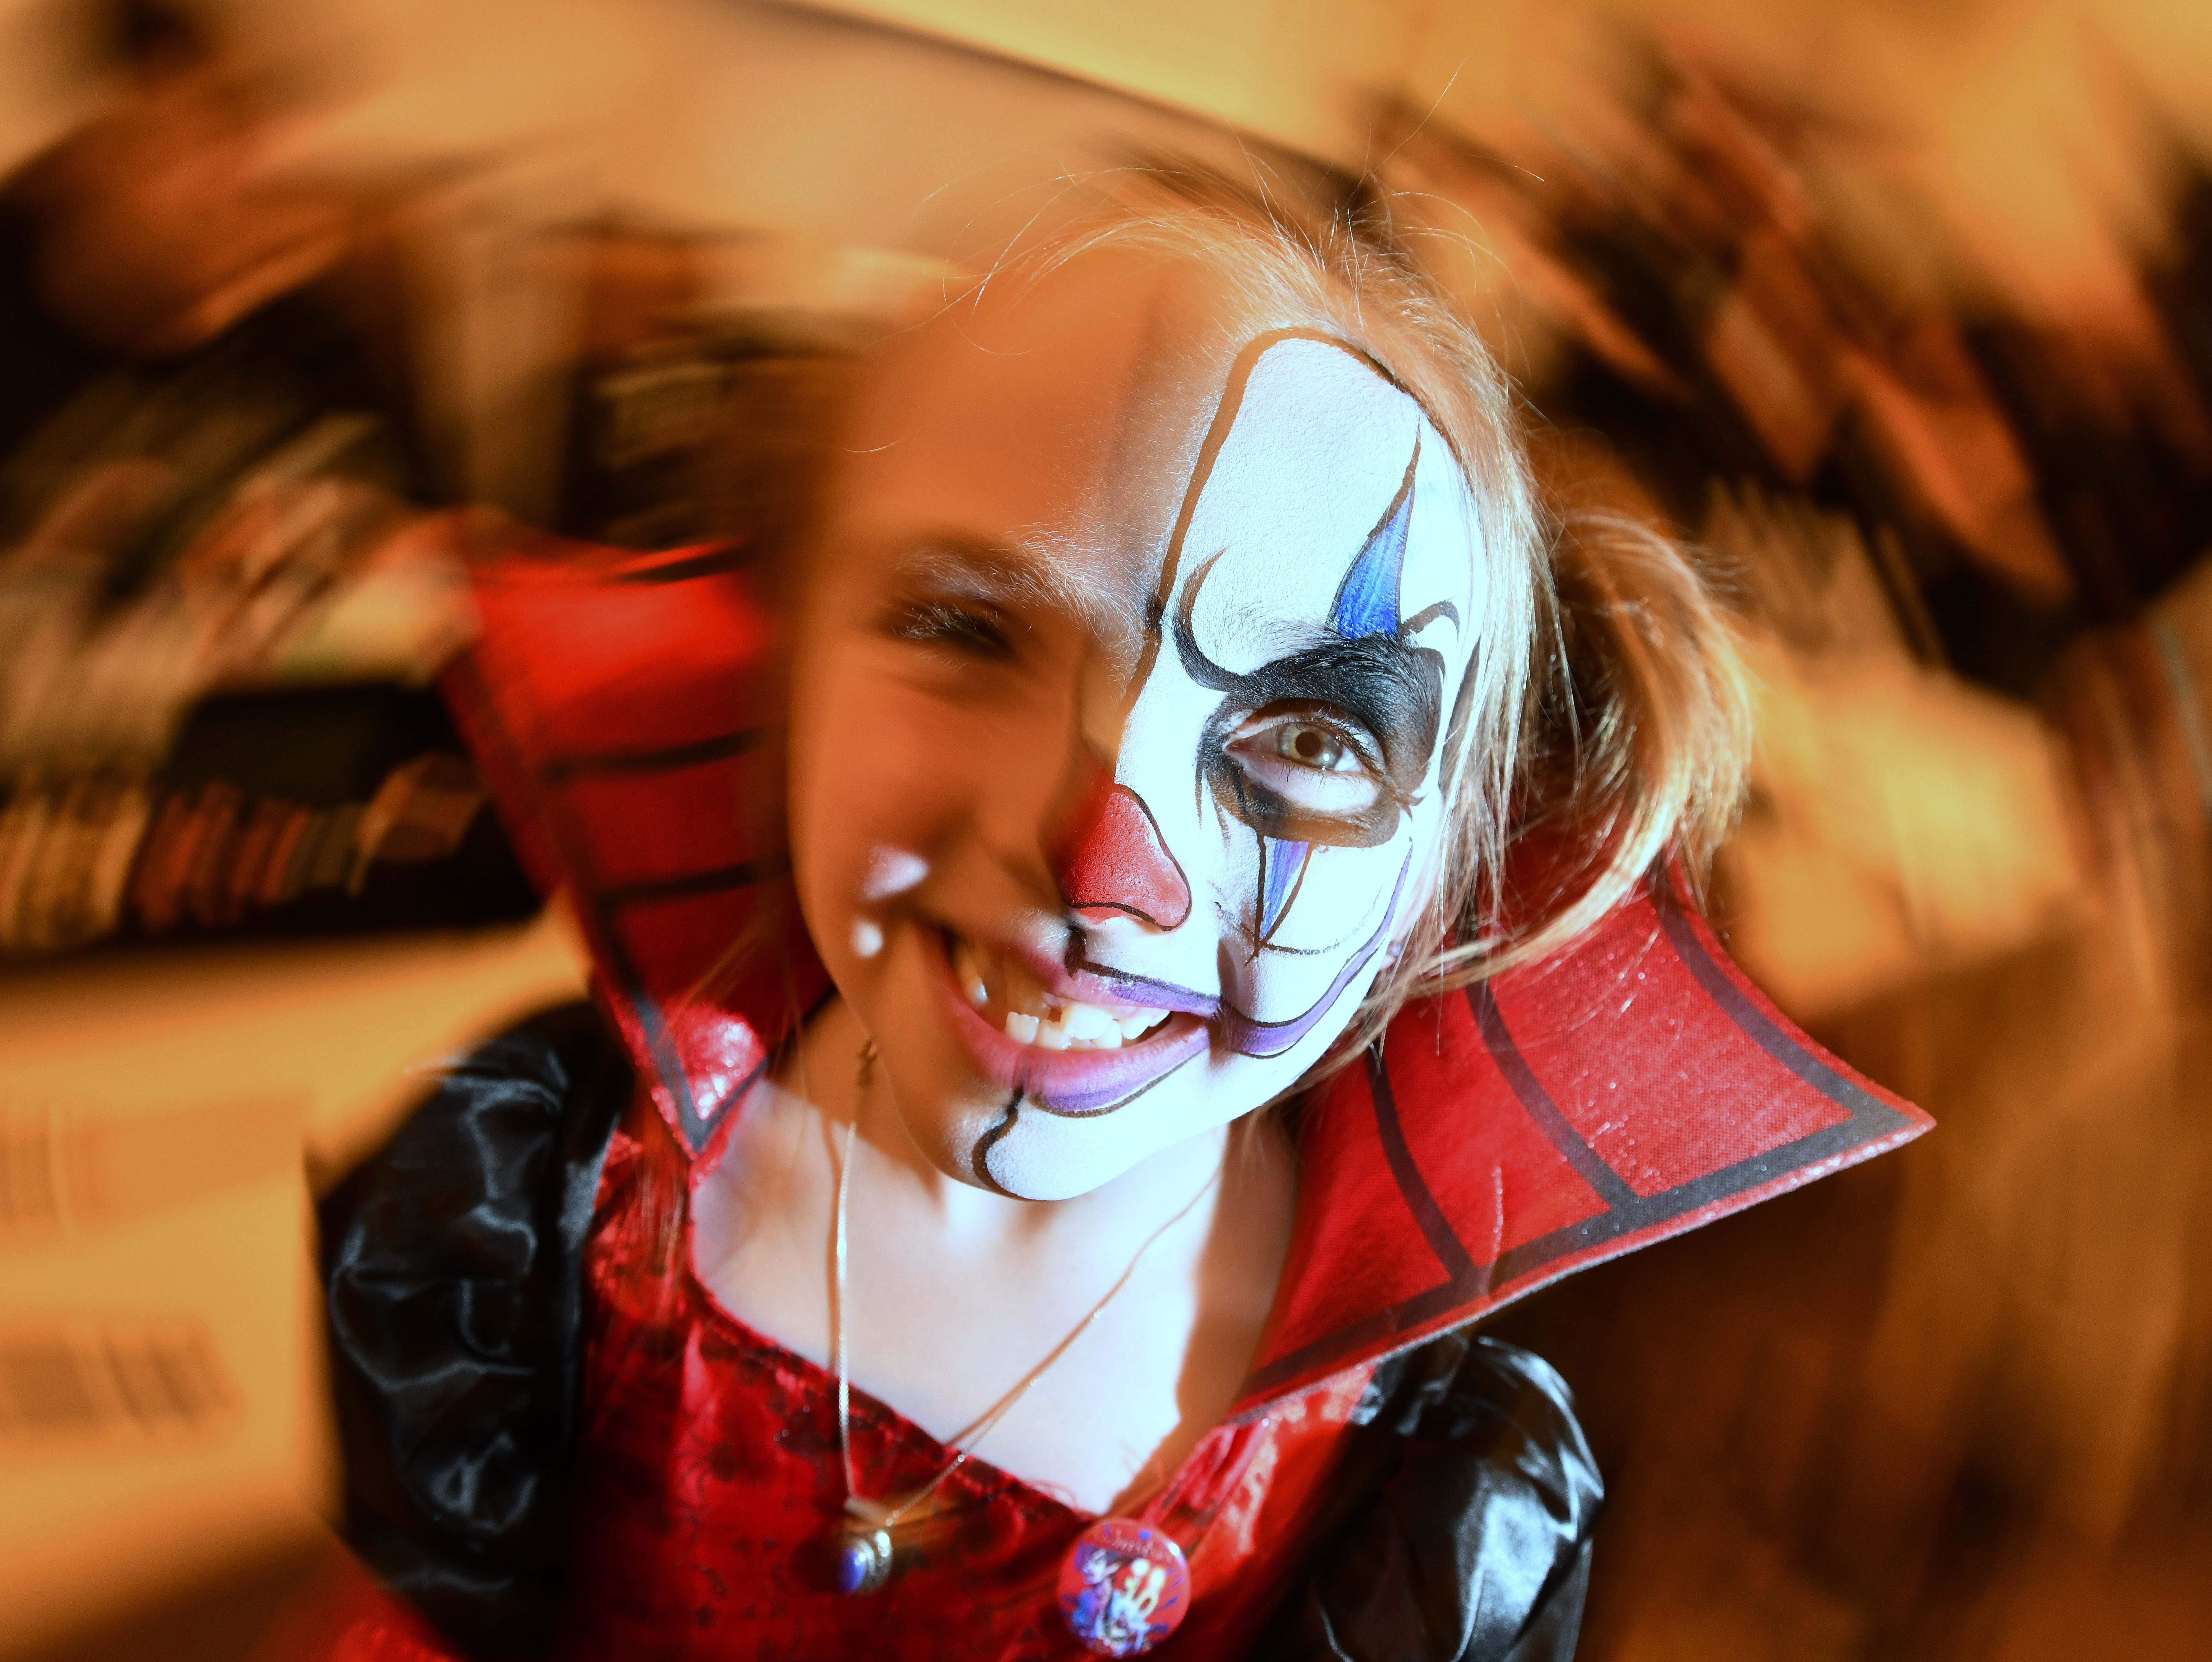 Alexis Grandy, 7 splits her time as a little bit adorable, a little bit scary during her visit to the Motor City Nightmares Horror Expo and Film Festival at the Novi Sheraton in Novi on April 27, 2018.